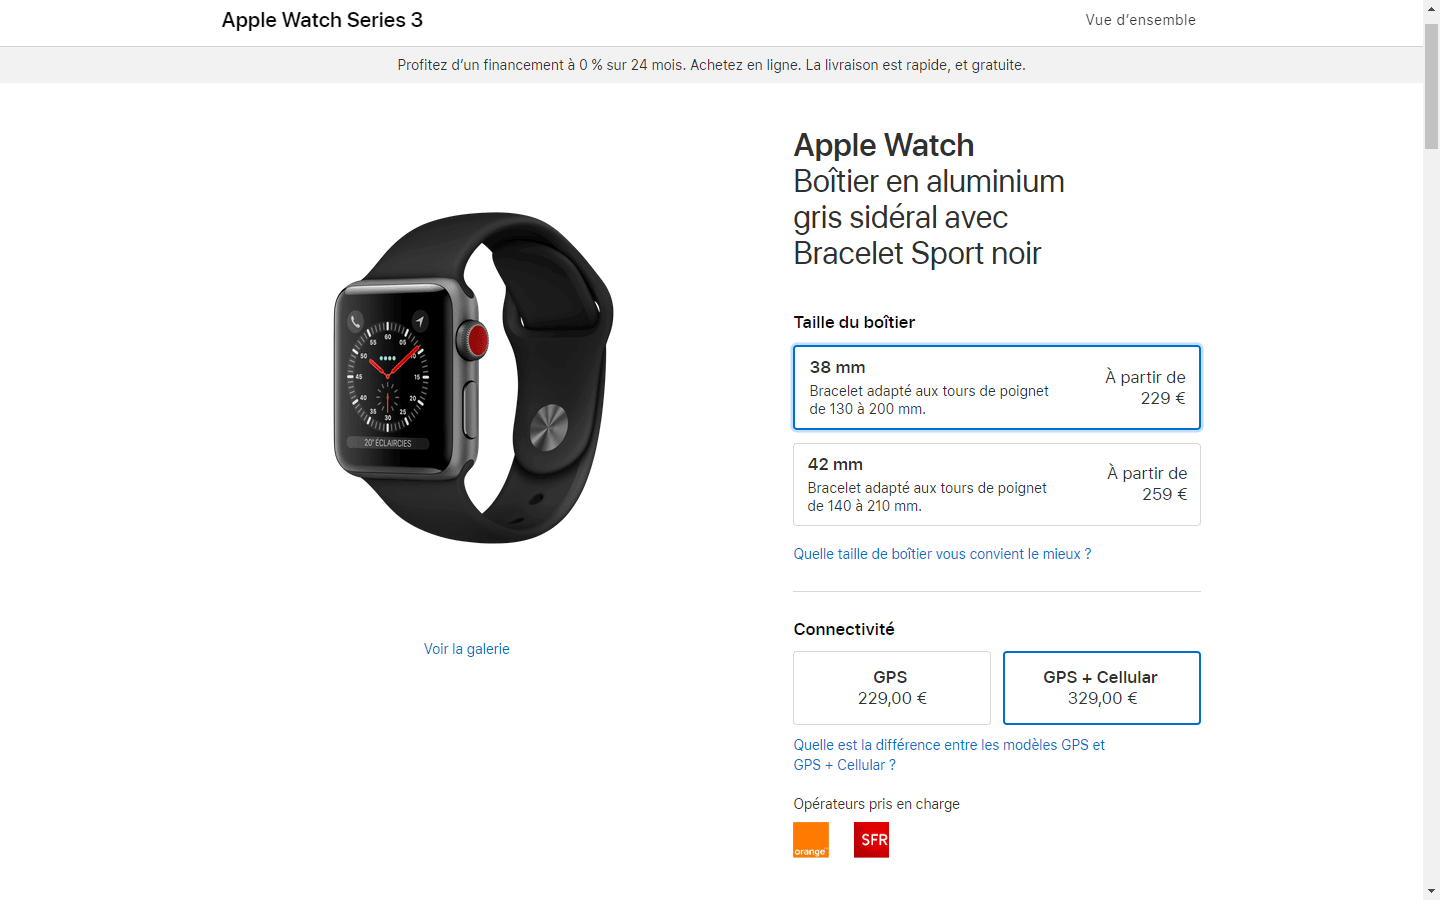 Site Apple Watch Series 3 Cellulaire